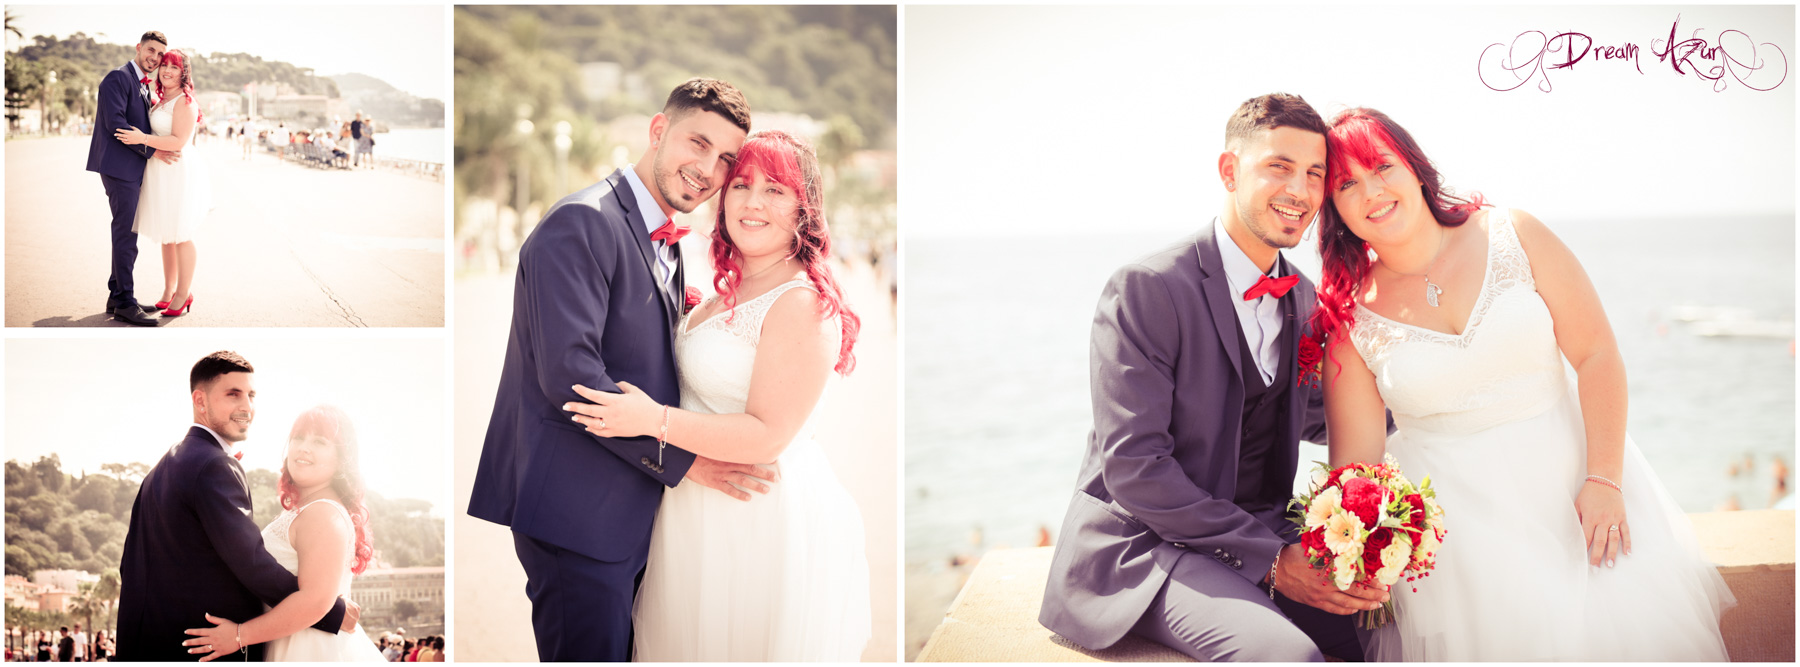 190824COMPO-Mariage-Cindy-et-Anthony-19